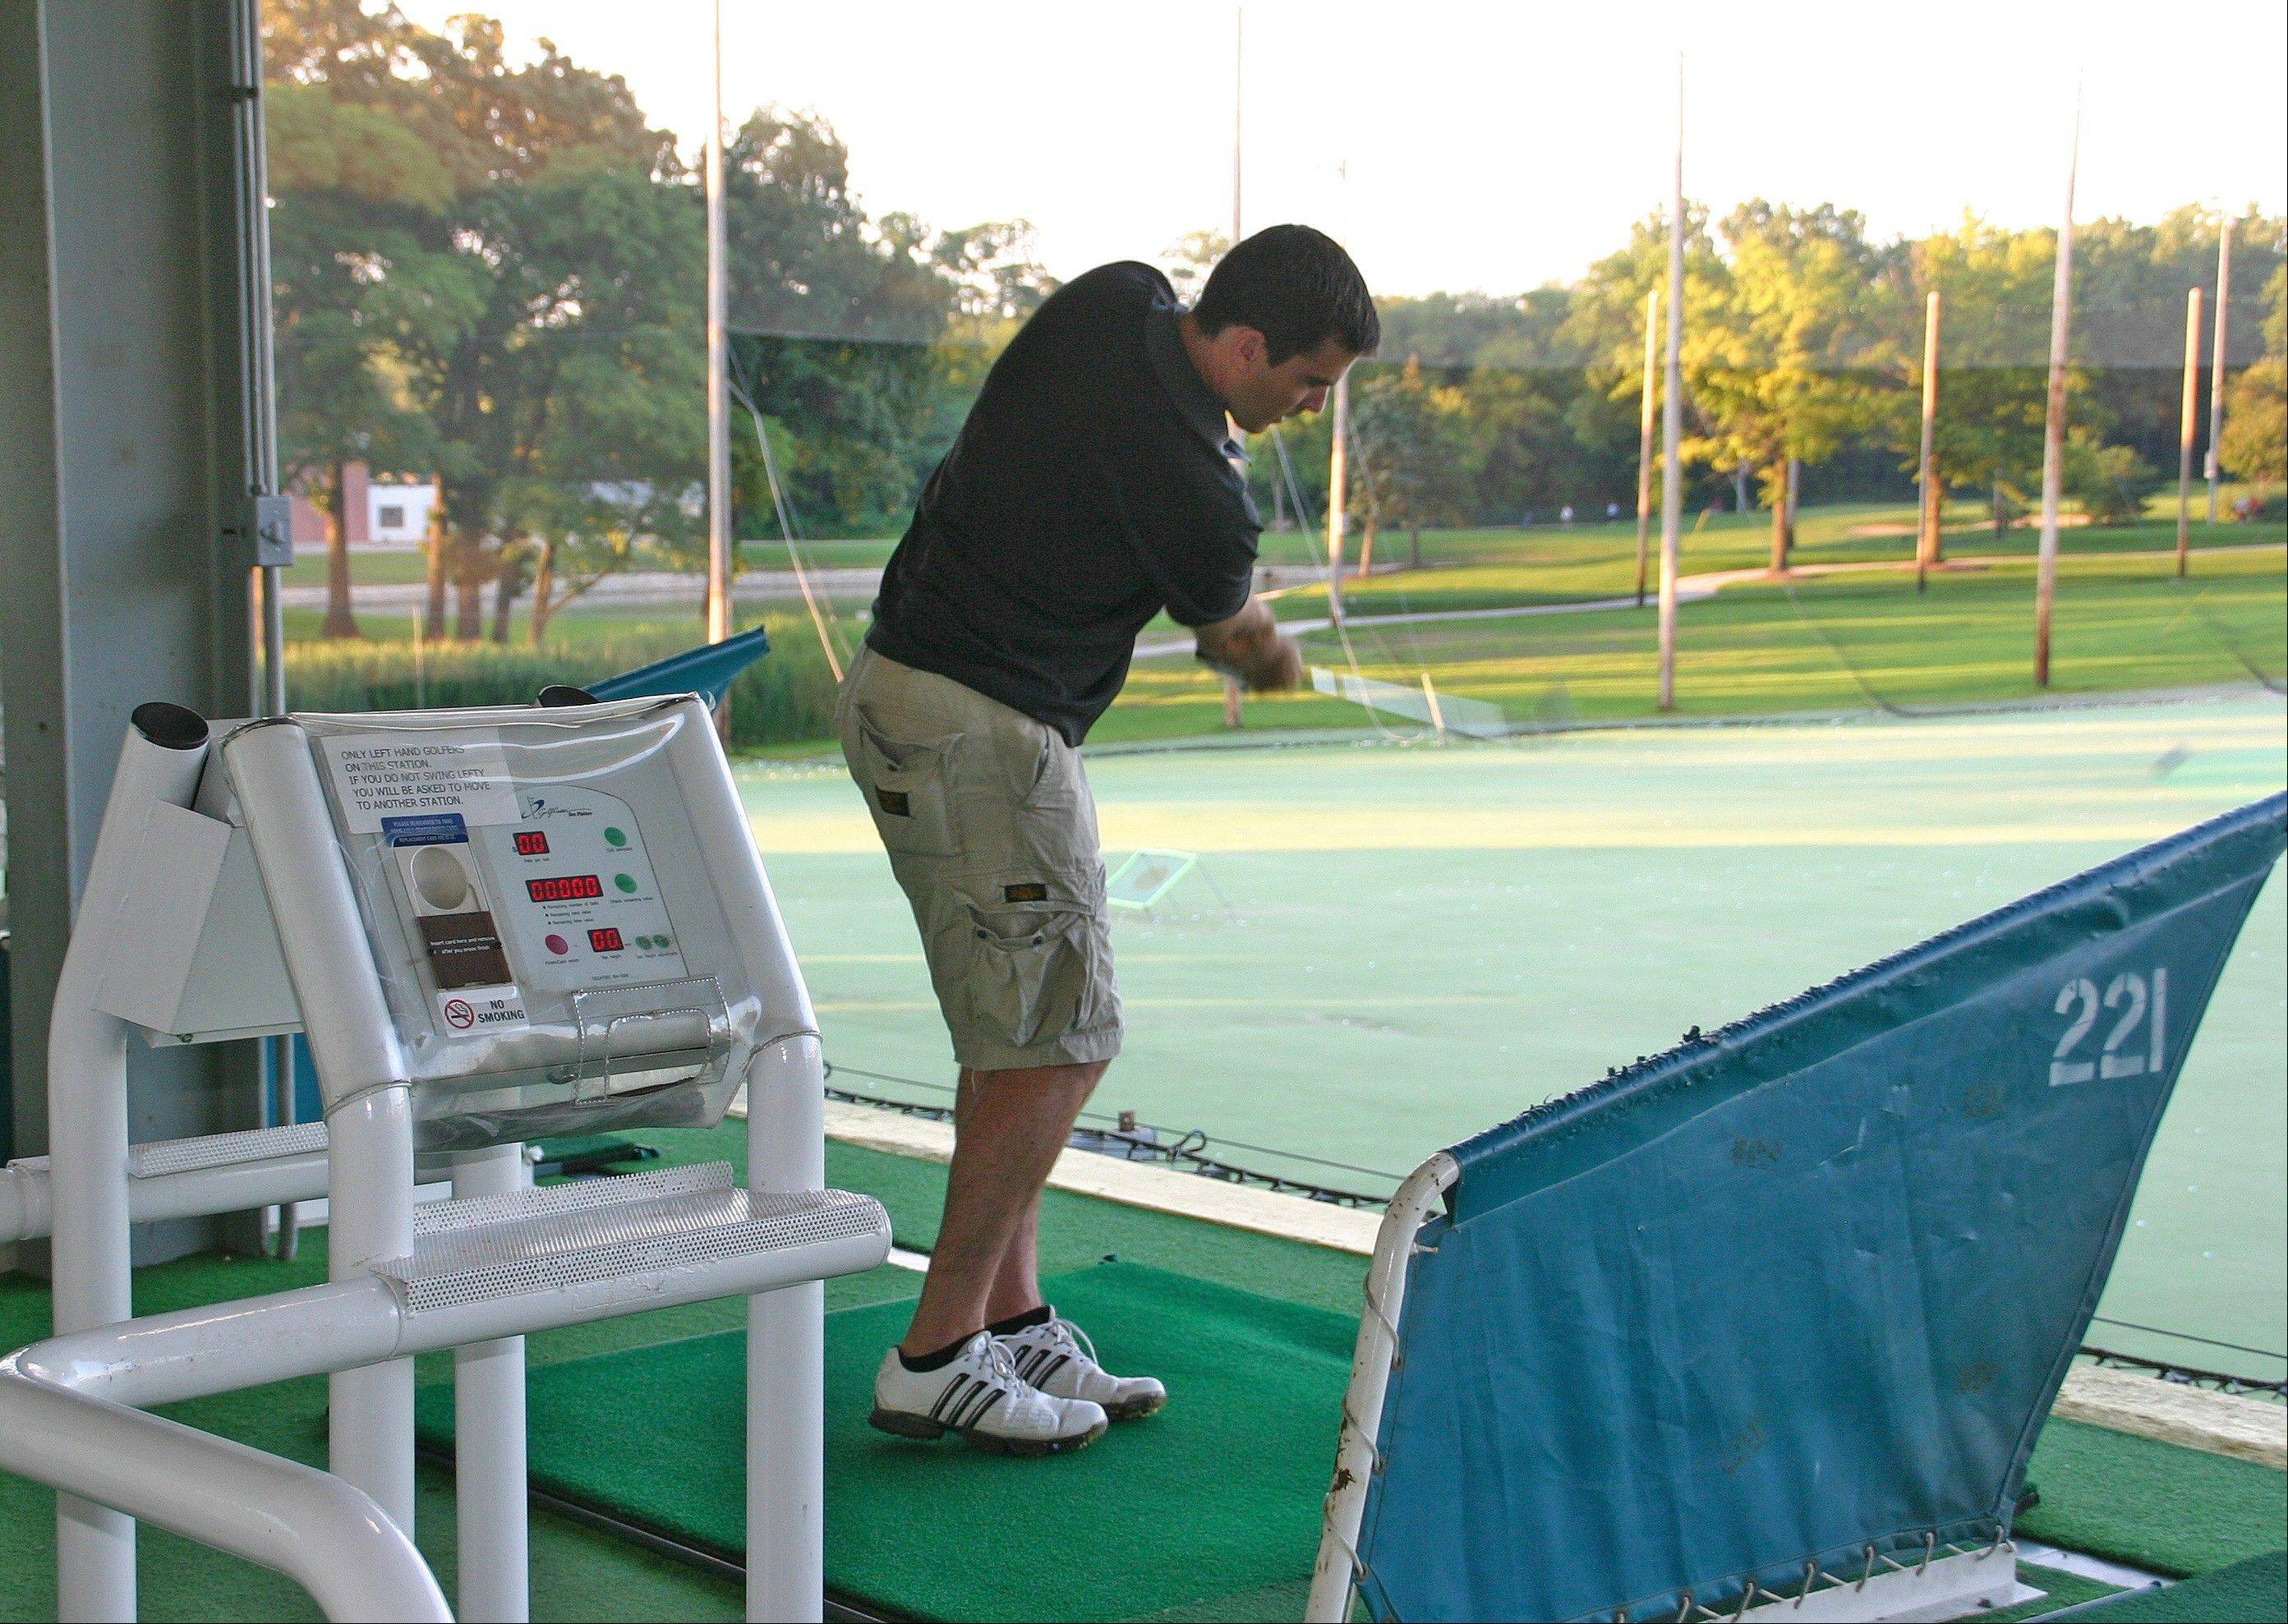 Golf Range Association of America has named Golf Center Des Plaines one of the top 50 golf ranges in America.